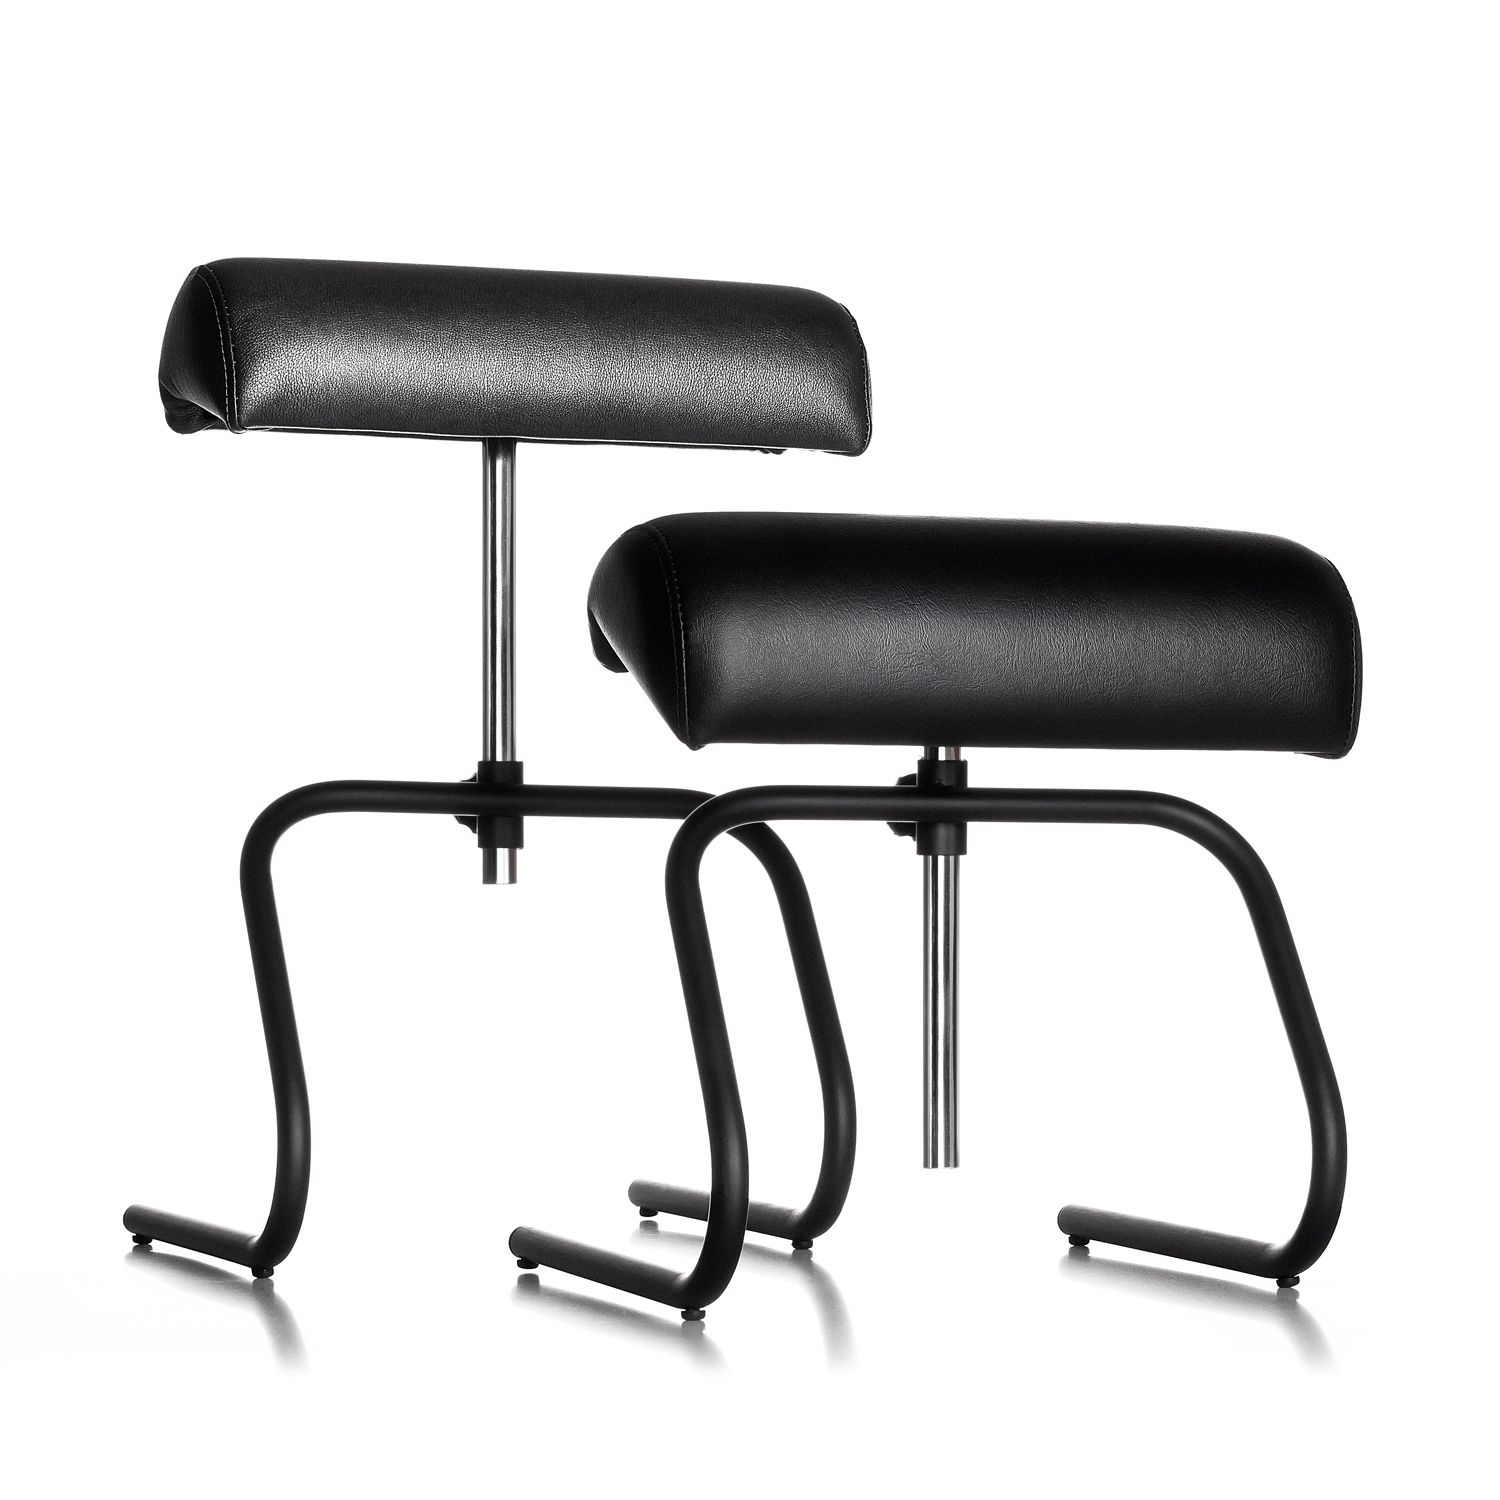 Belava's FreeStanding FootRest turns any chair into a pedicure chair!